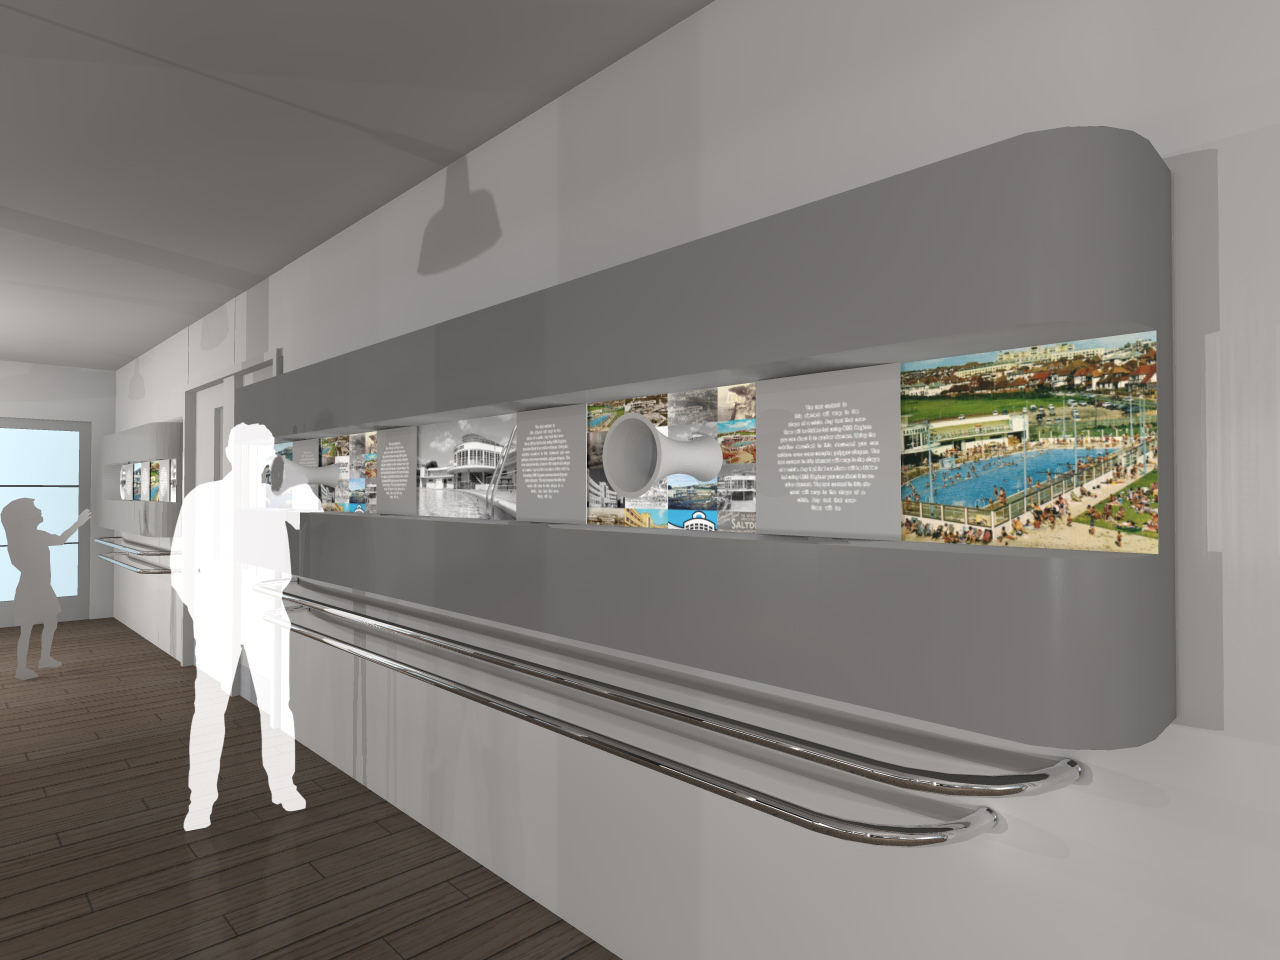 The restored lido building will feature interactive heritage interpretation panels, so that future generations can learn about: the lido movement, modernist architecture in the UK, and Saltdean's role in the heyday of the seaside holiday.